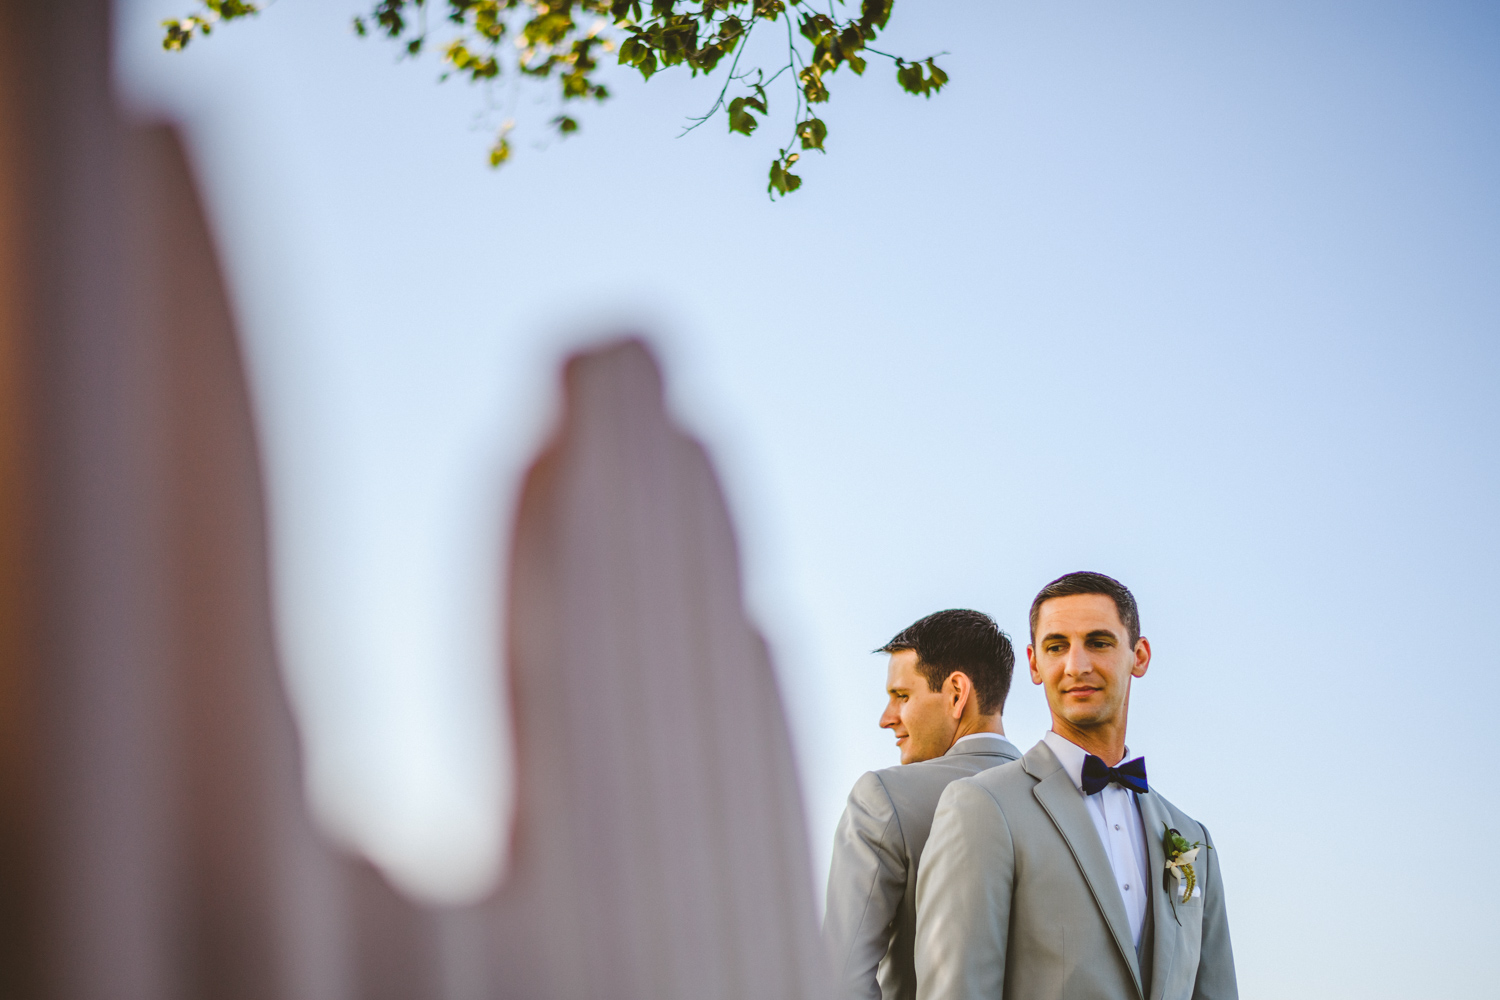 068 - amazing gay lgbtq wedding baltimore and washington dc wedding photographer nathan mitchell.jpg